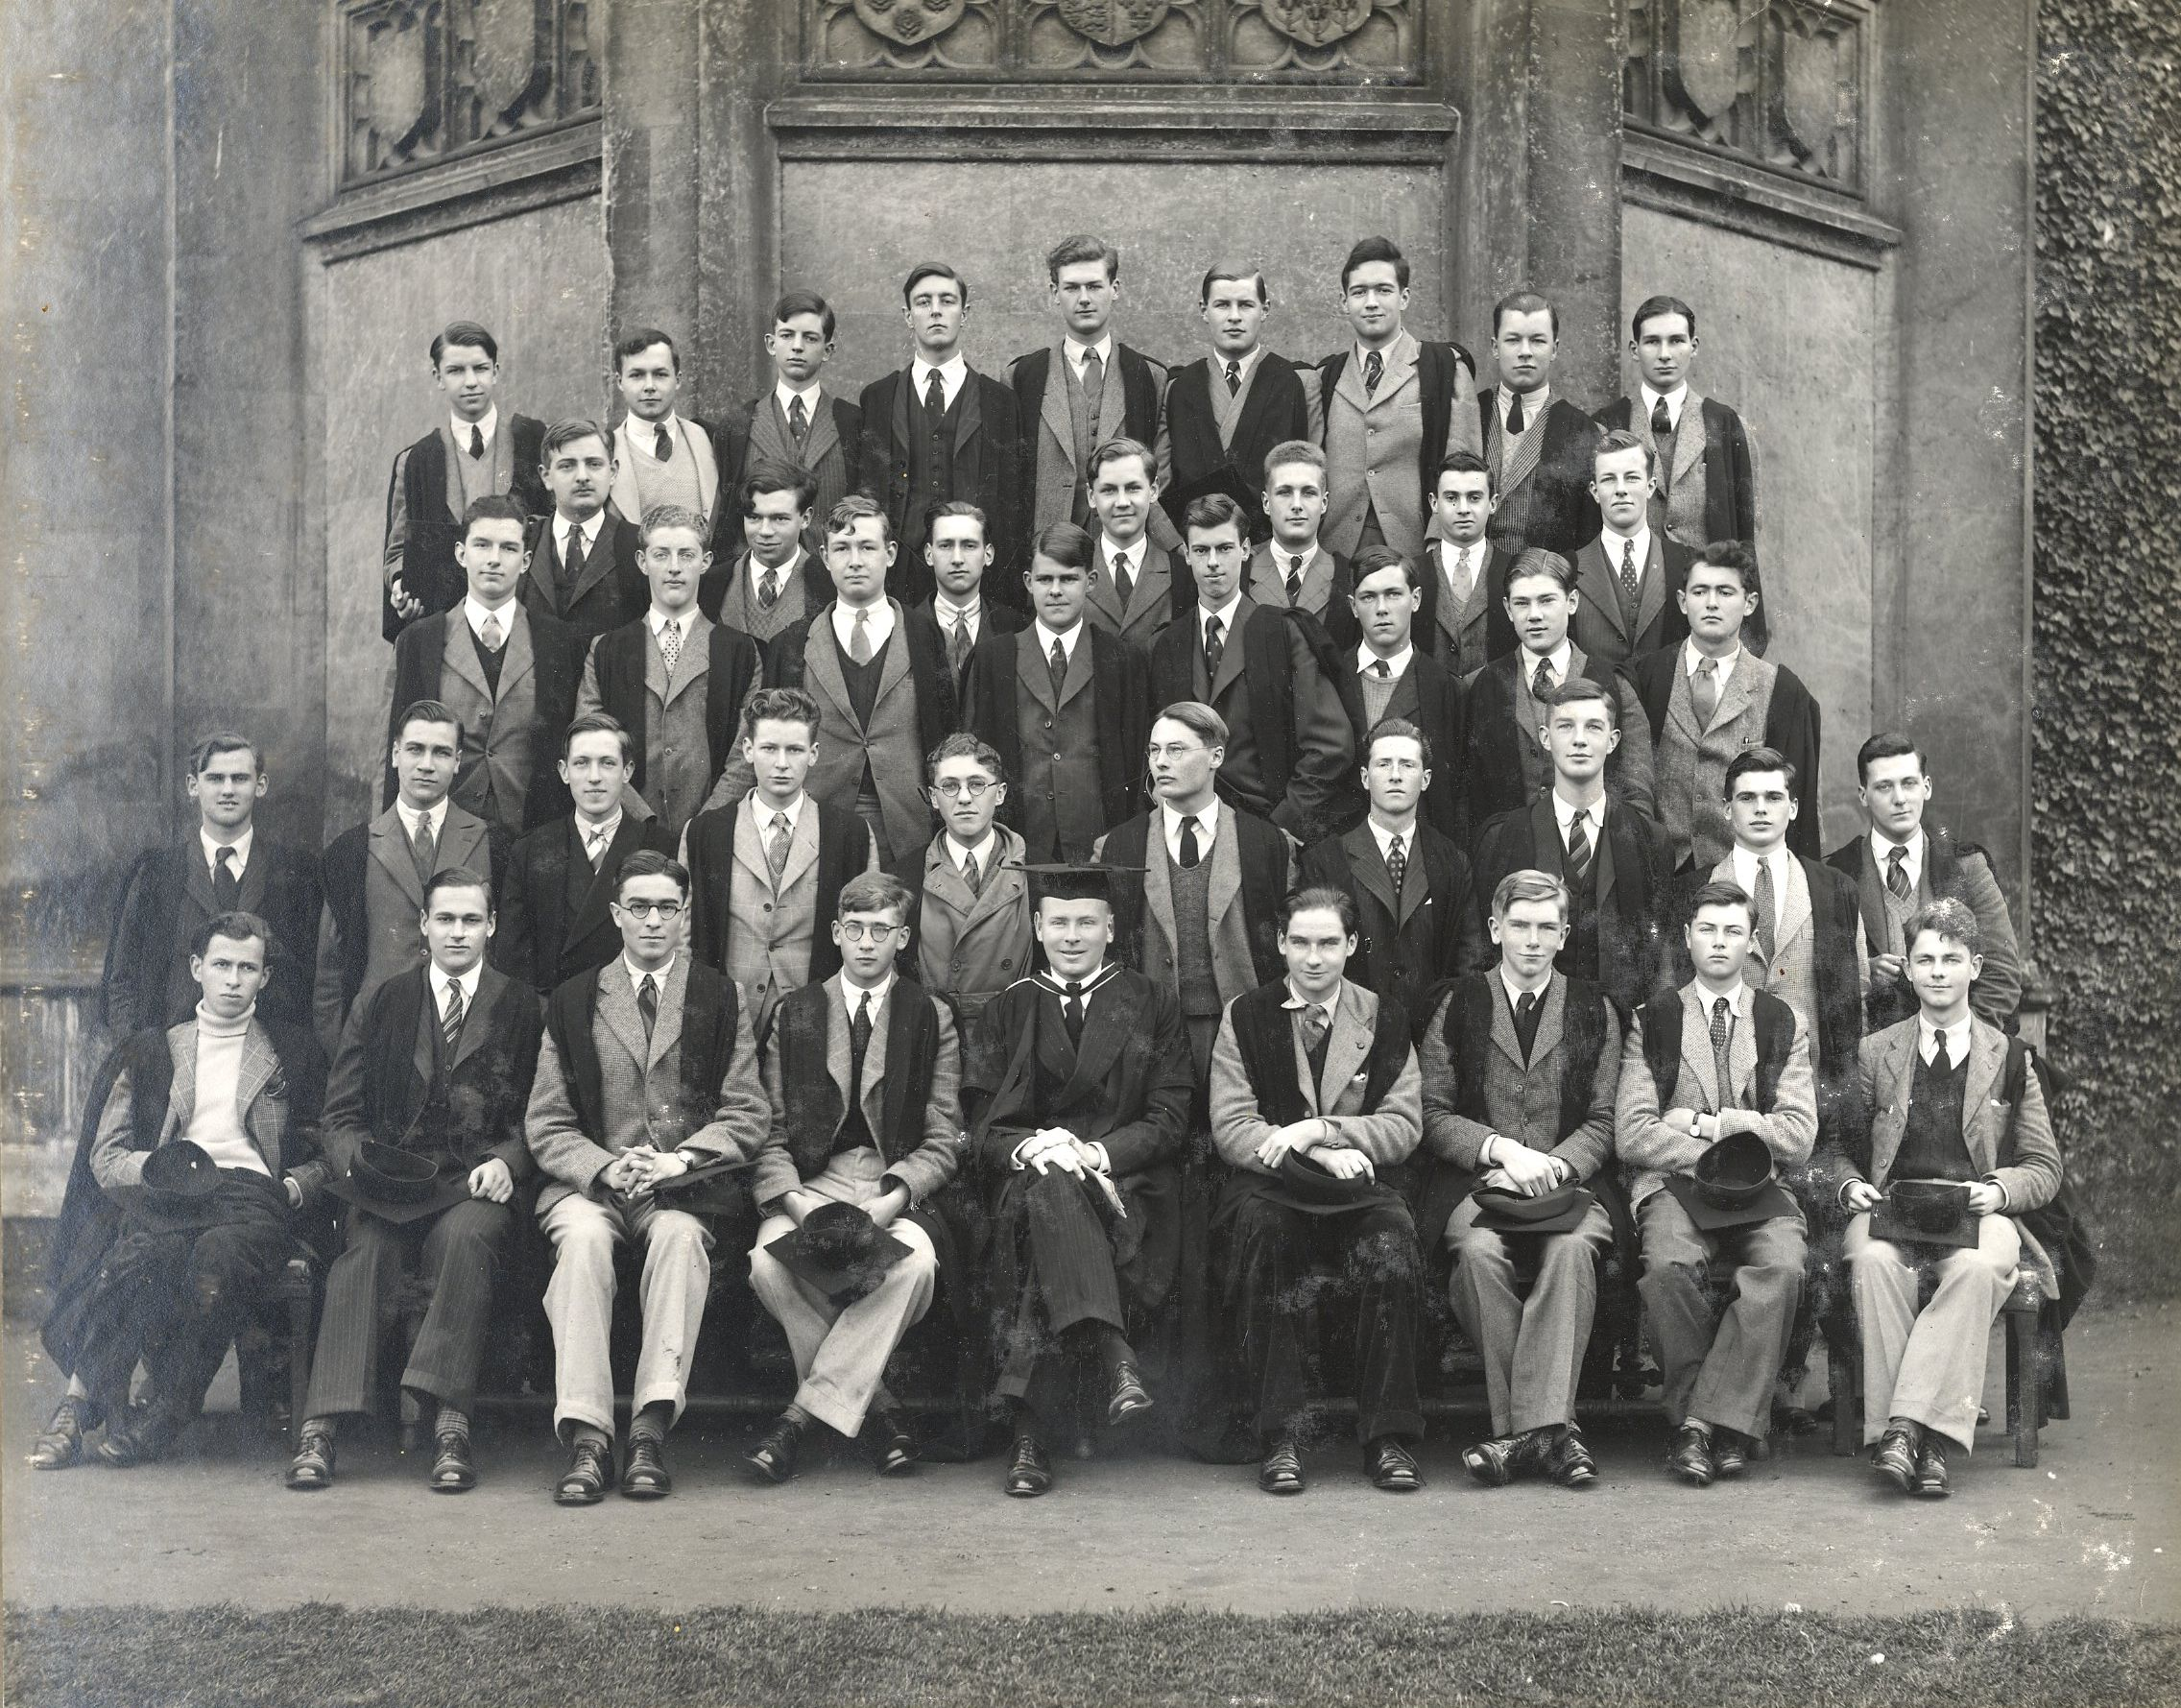 Matriculation, October 1940, Rylands appears in the middle of the front row. [KCAC/1/3/6/1]